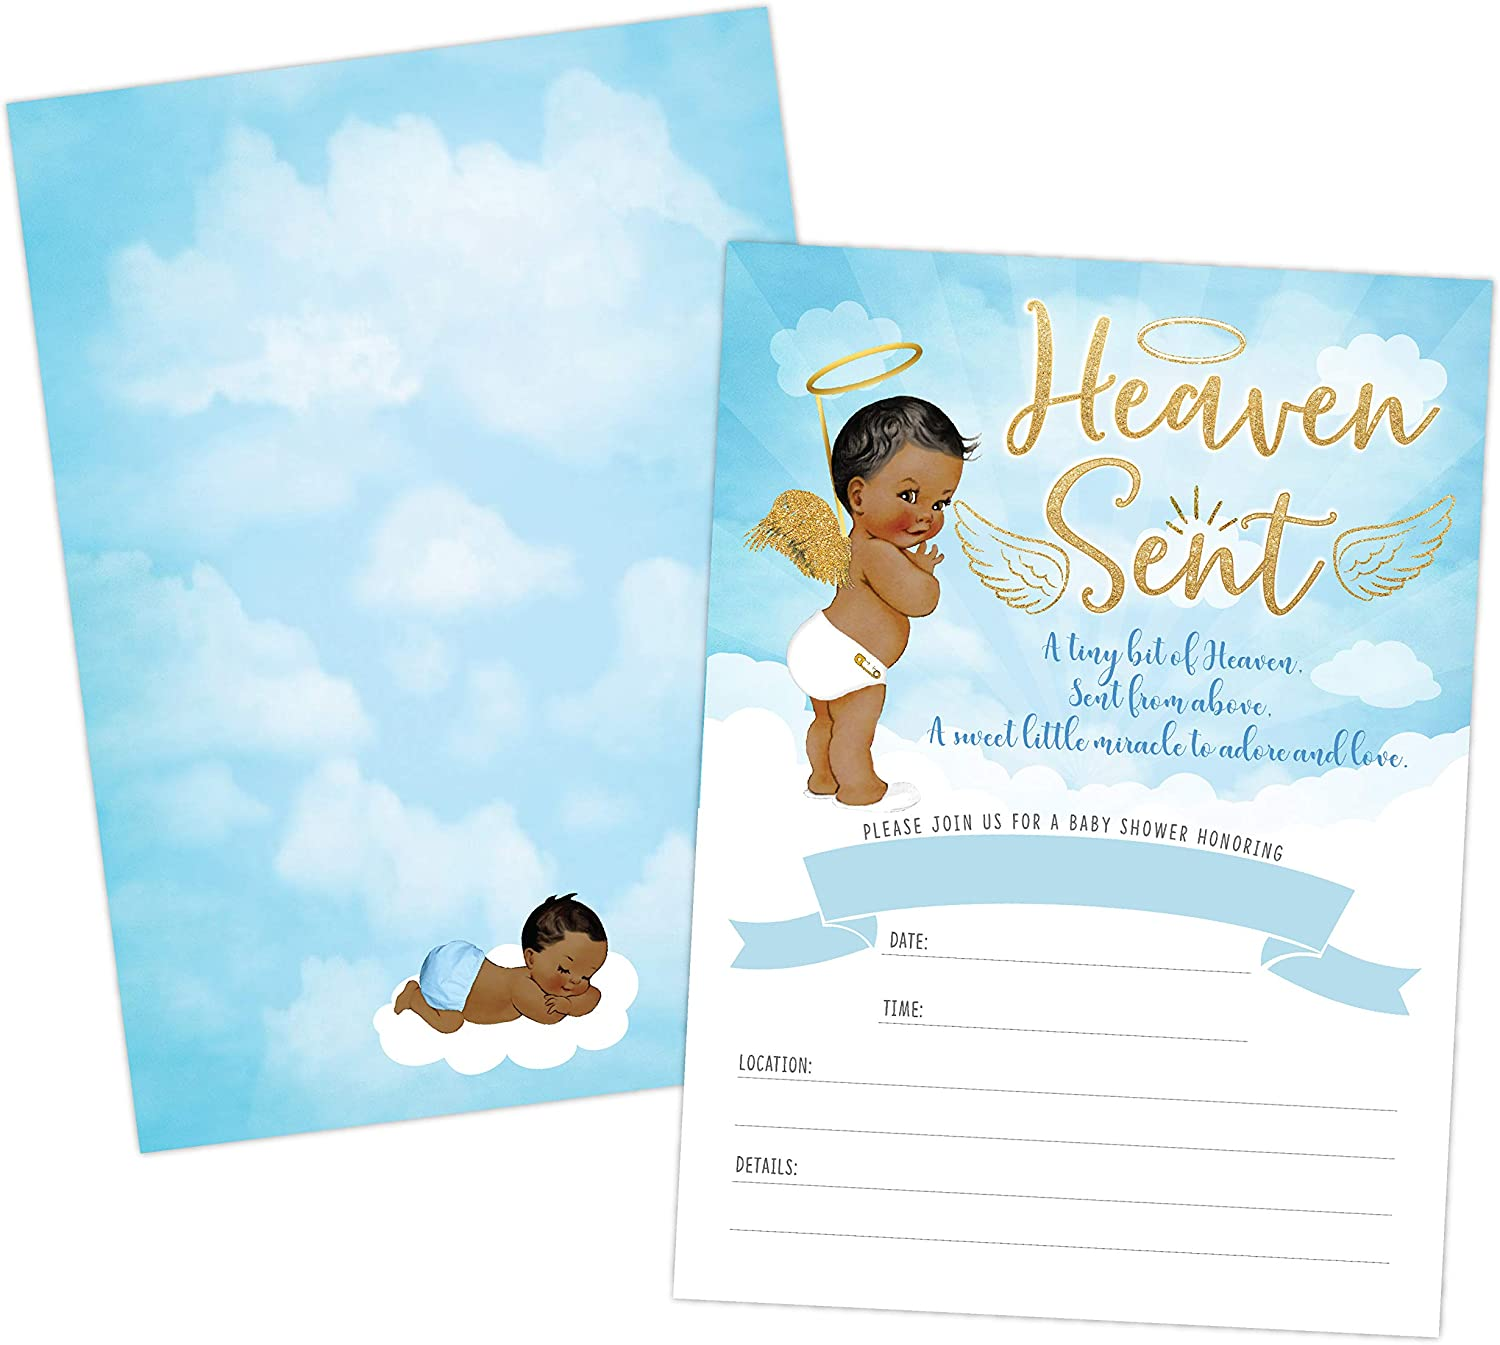 HEAVEN SENT BOY BABY SHOWER INVITATION AFRICAN AMERICAN CUTE CLOUDS AND CELESTIAL ANGEL BABY SHOWER INVITE TWINKLE TWINKLE LITTLE SAR 20 FILL IN INVITATIONS AND ENVELOPES